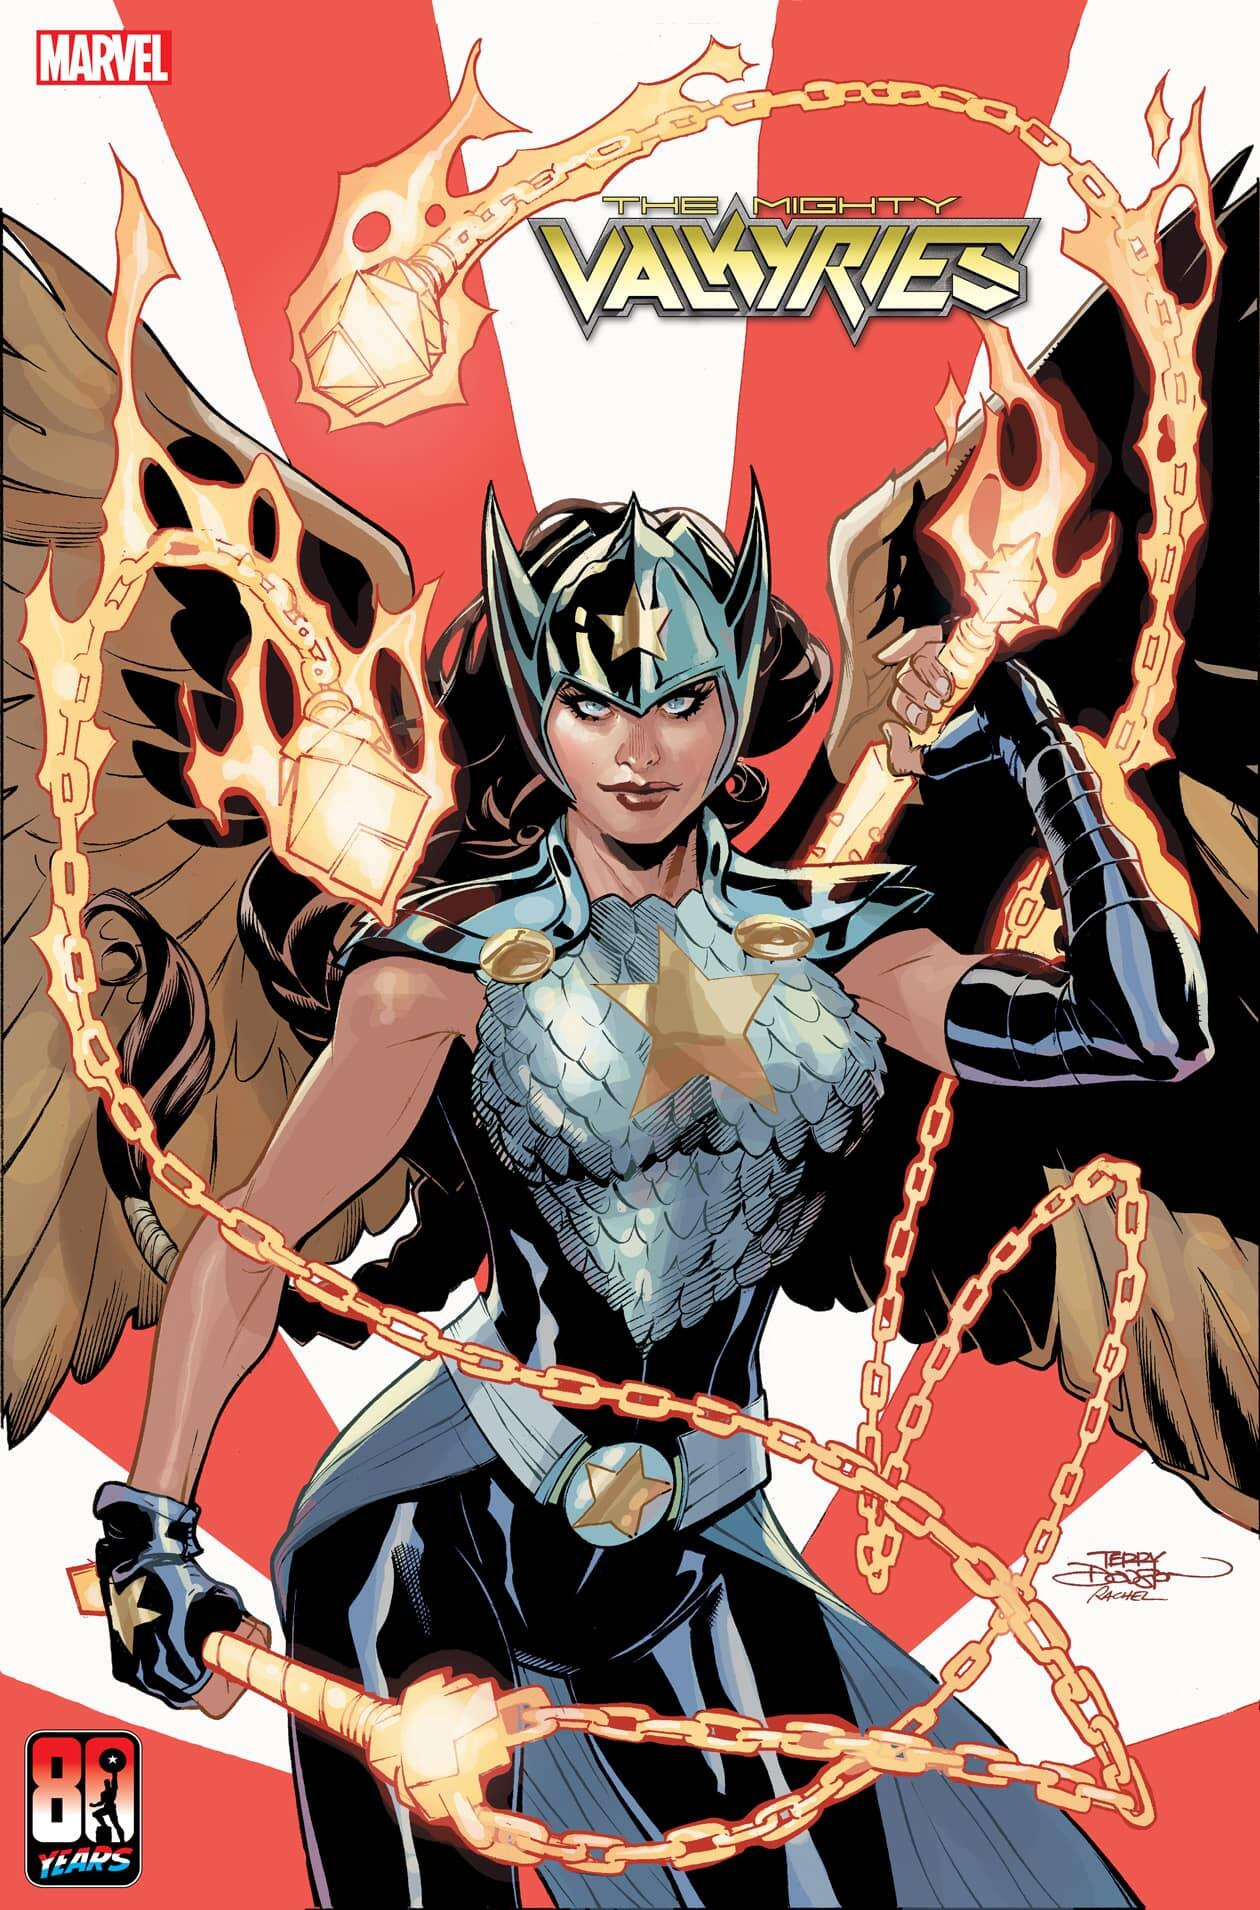 HE MIGHTY VALKYRIES #4 CAPTAIN AMERICA 80TH VARIANT COVER by TERRY DODSON & RACHEL DODSON